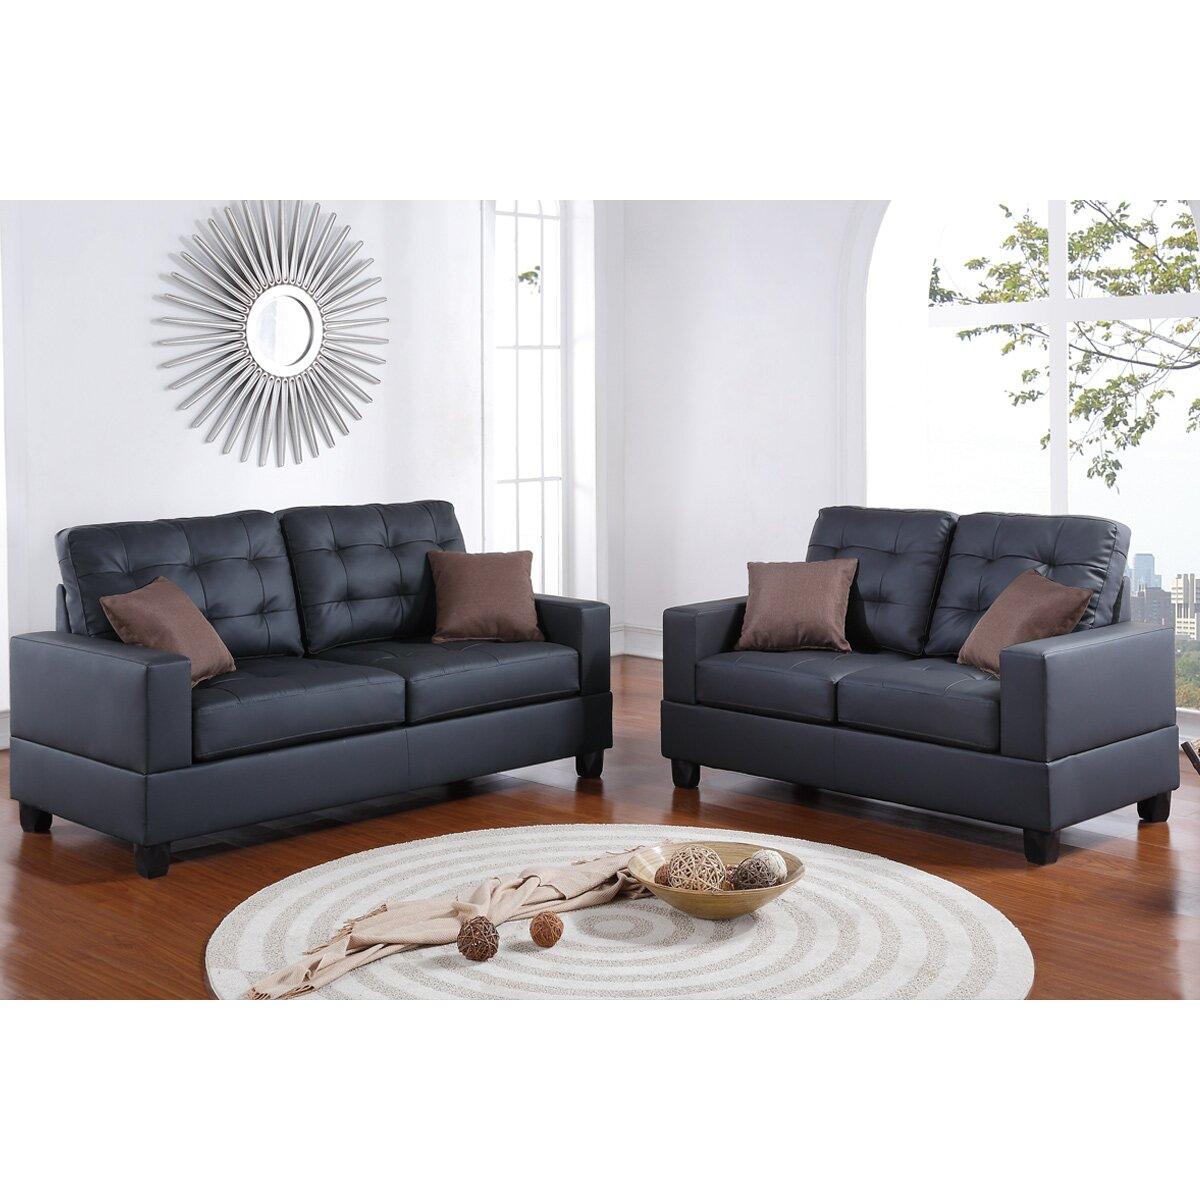 Poundex bobkona aria 2 piece sofa and loveseat set for 2 piece furniture set